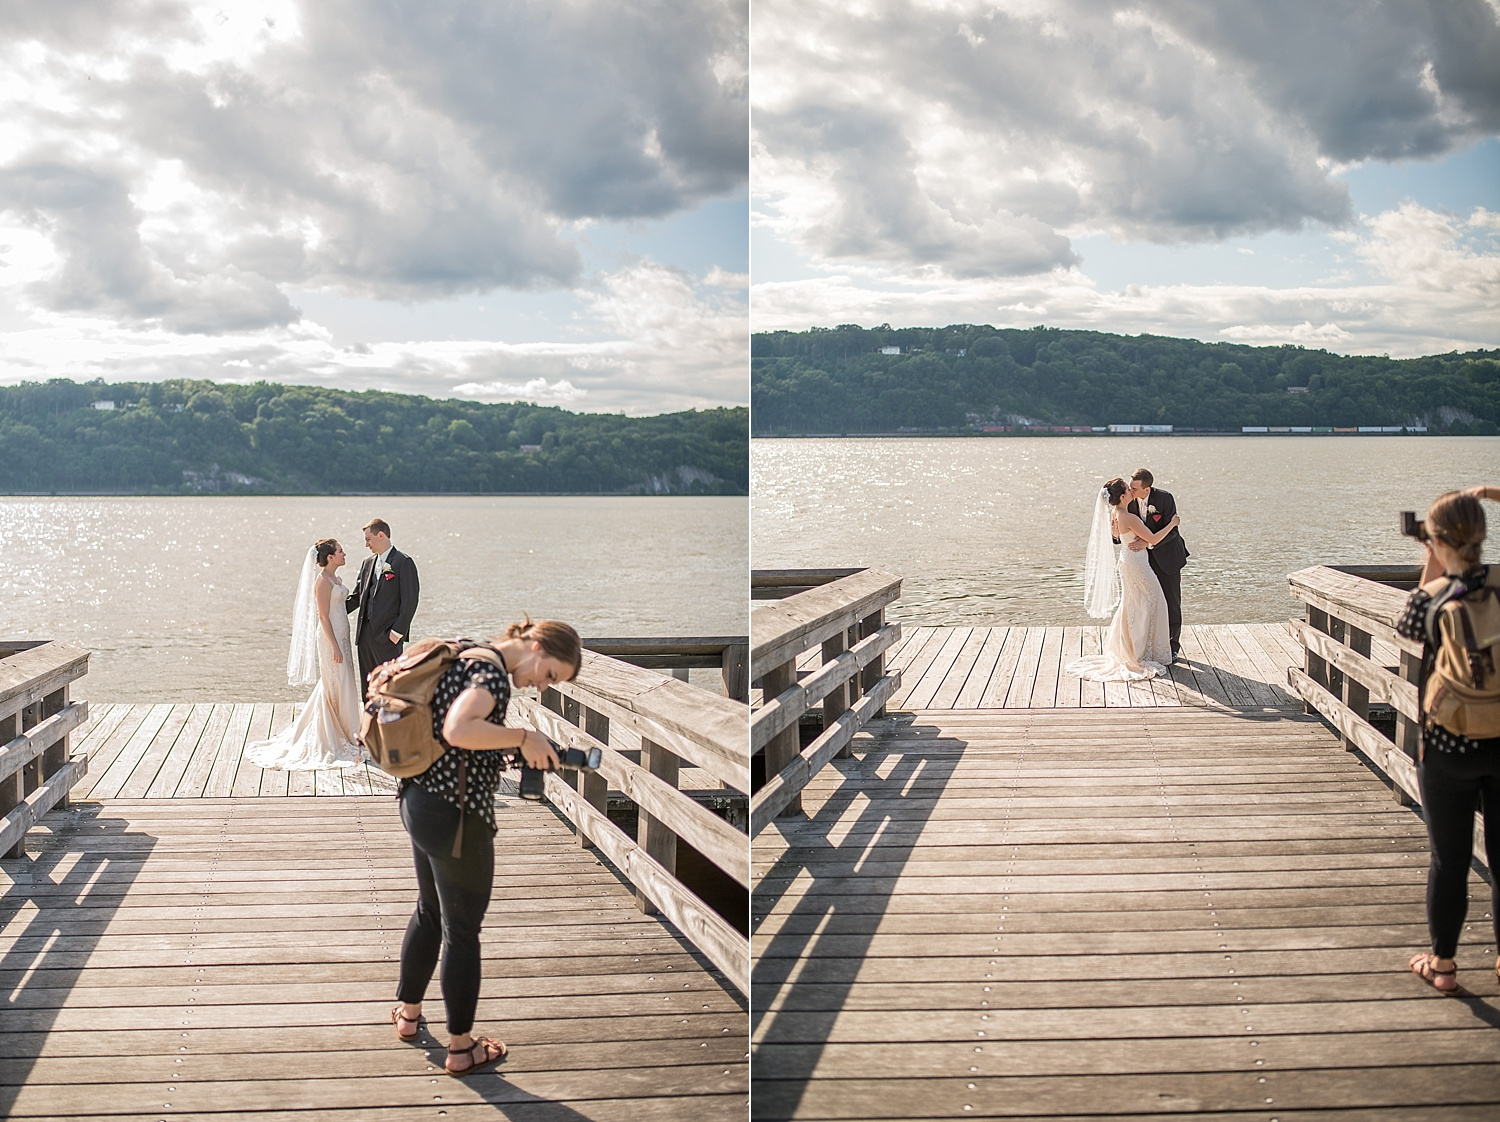 Bright, beautiful photos right on the Hudson River!